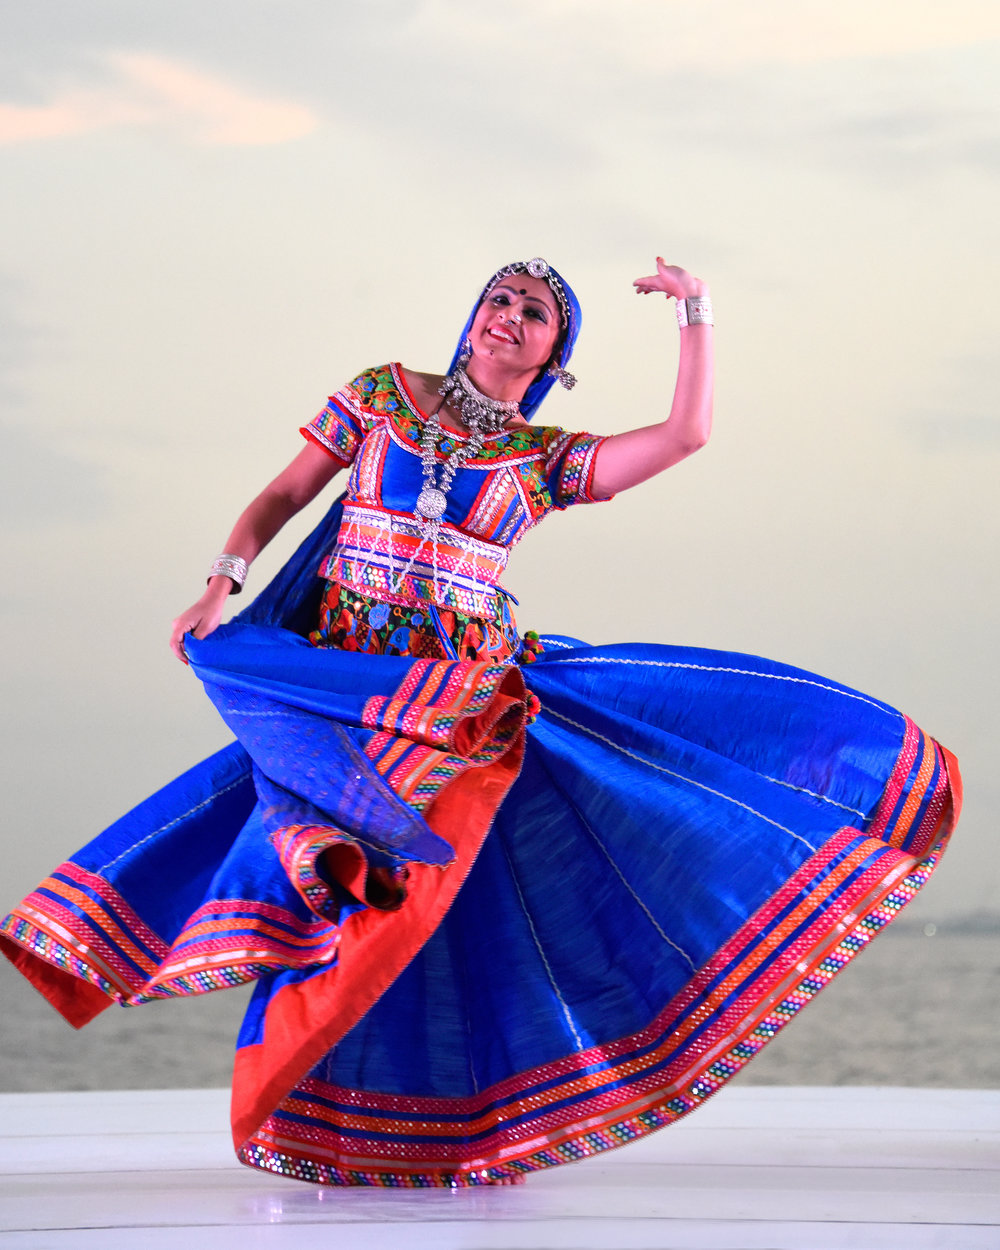 DESERT FIRE PROJECT RAJASTHANI FOLK DANCE 'KALBELIA' WITH MALINI TANEJA